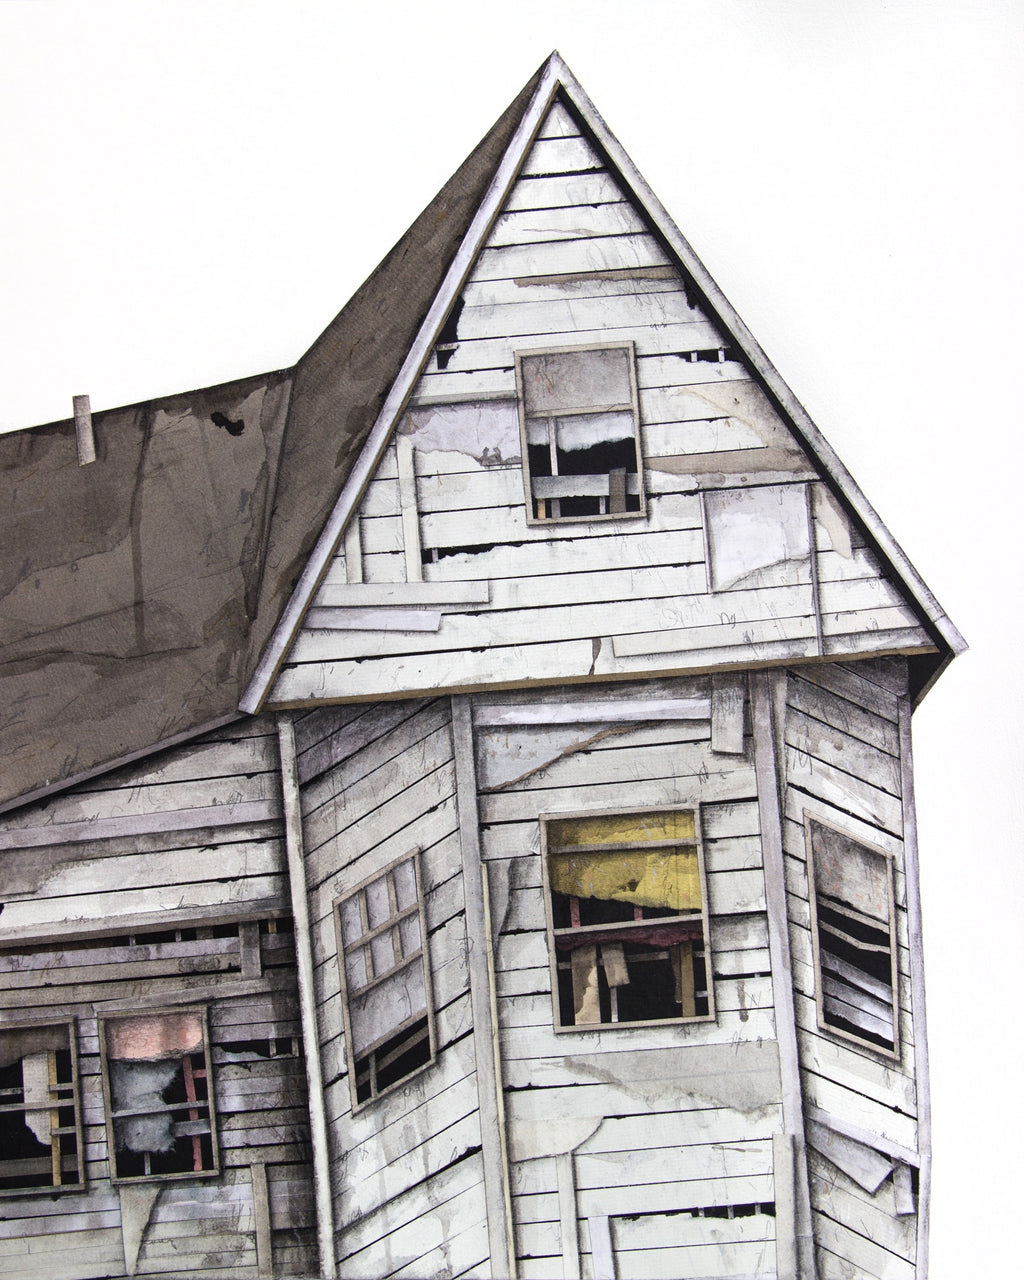 House Studies Series III